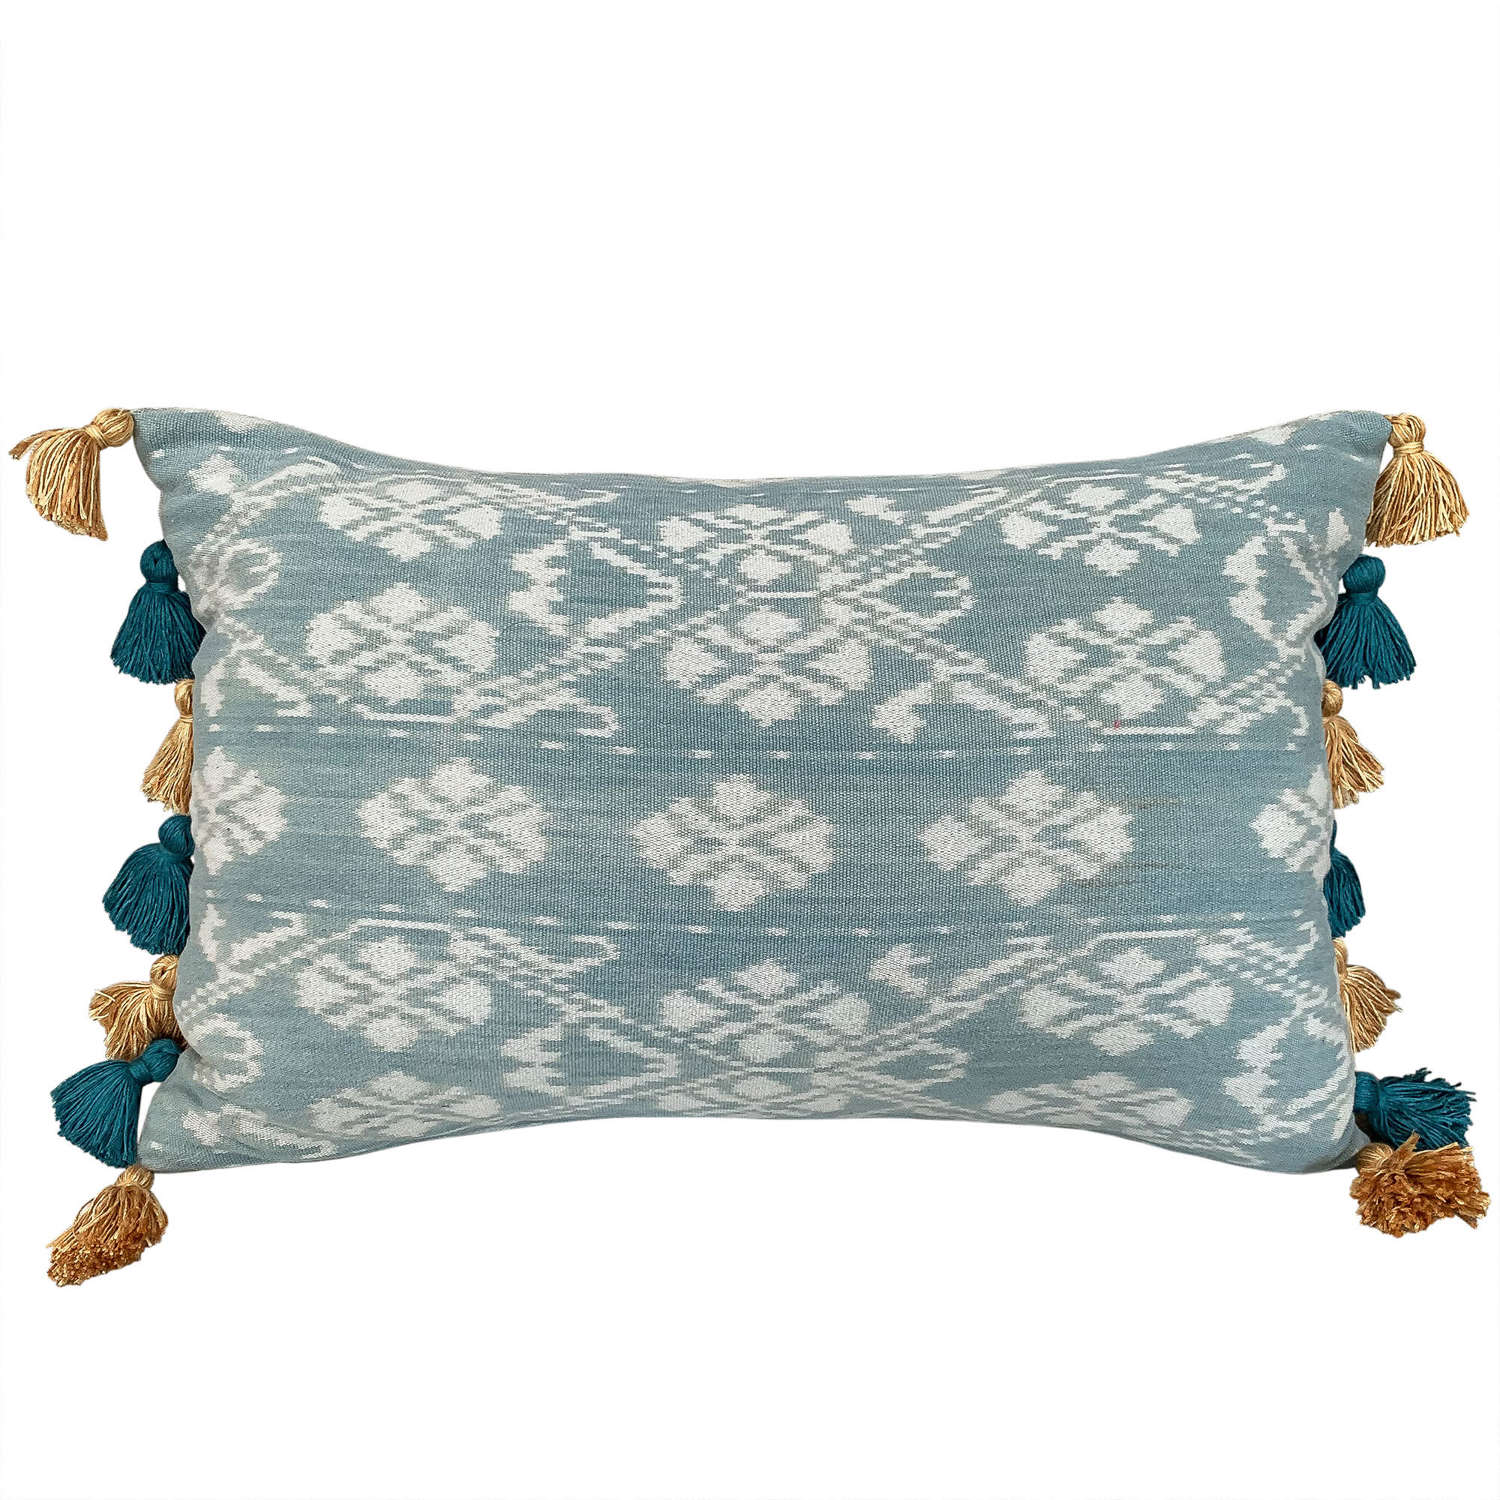 Rote ikat cushions with tasselled sides